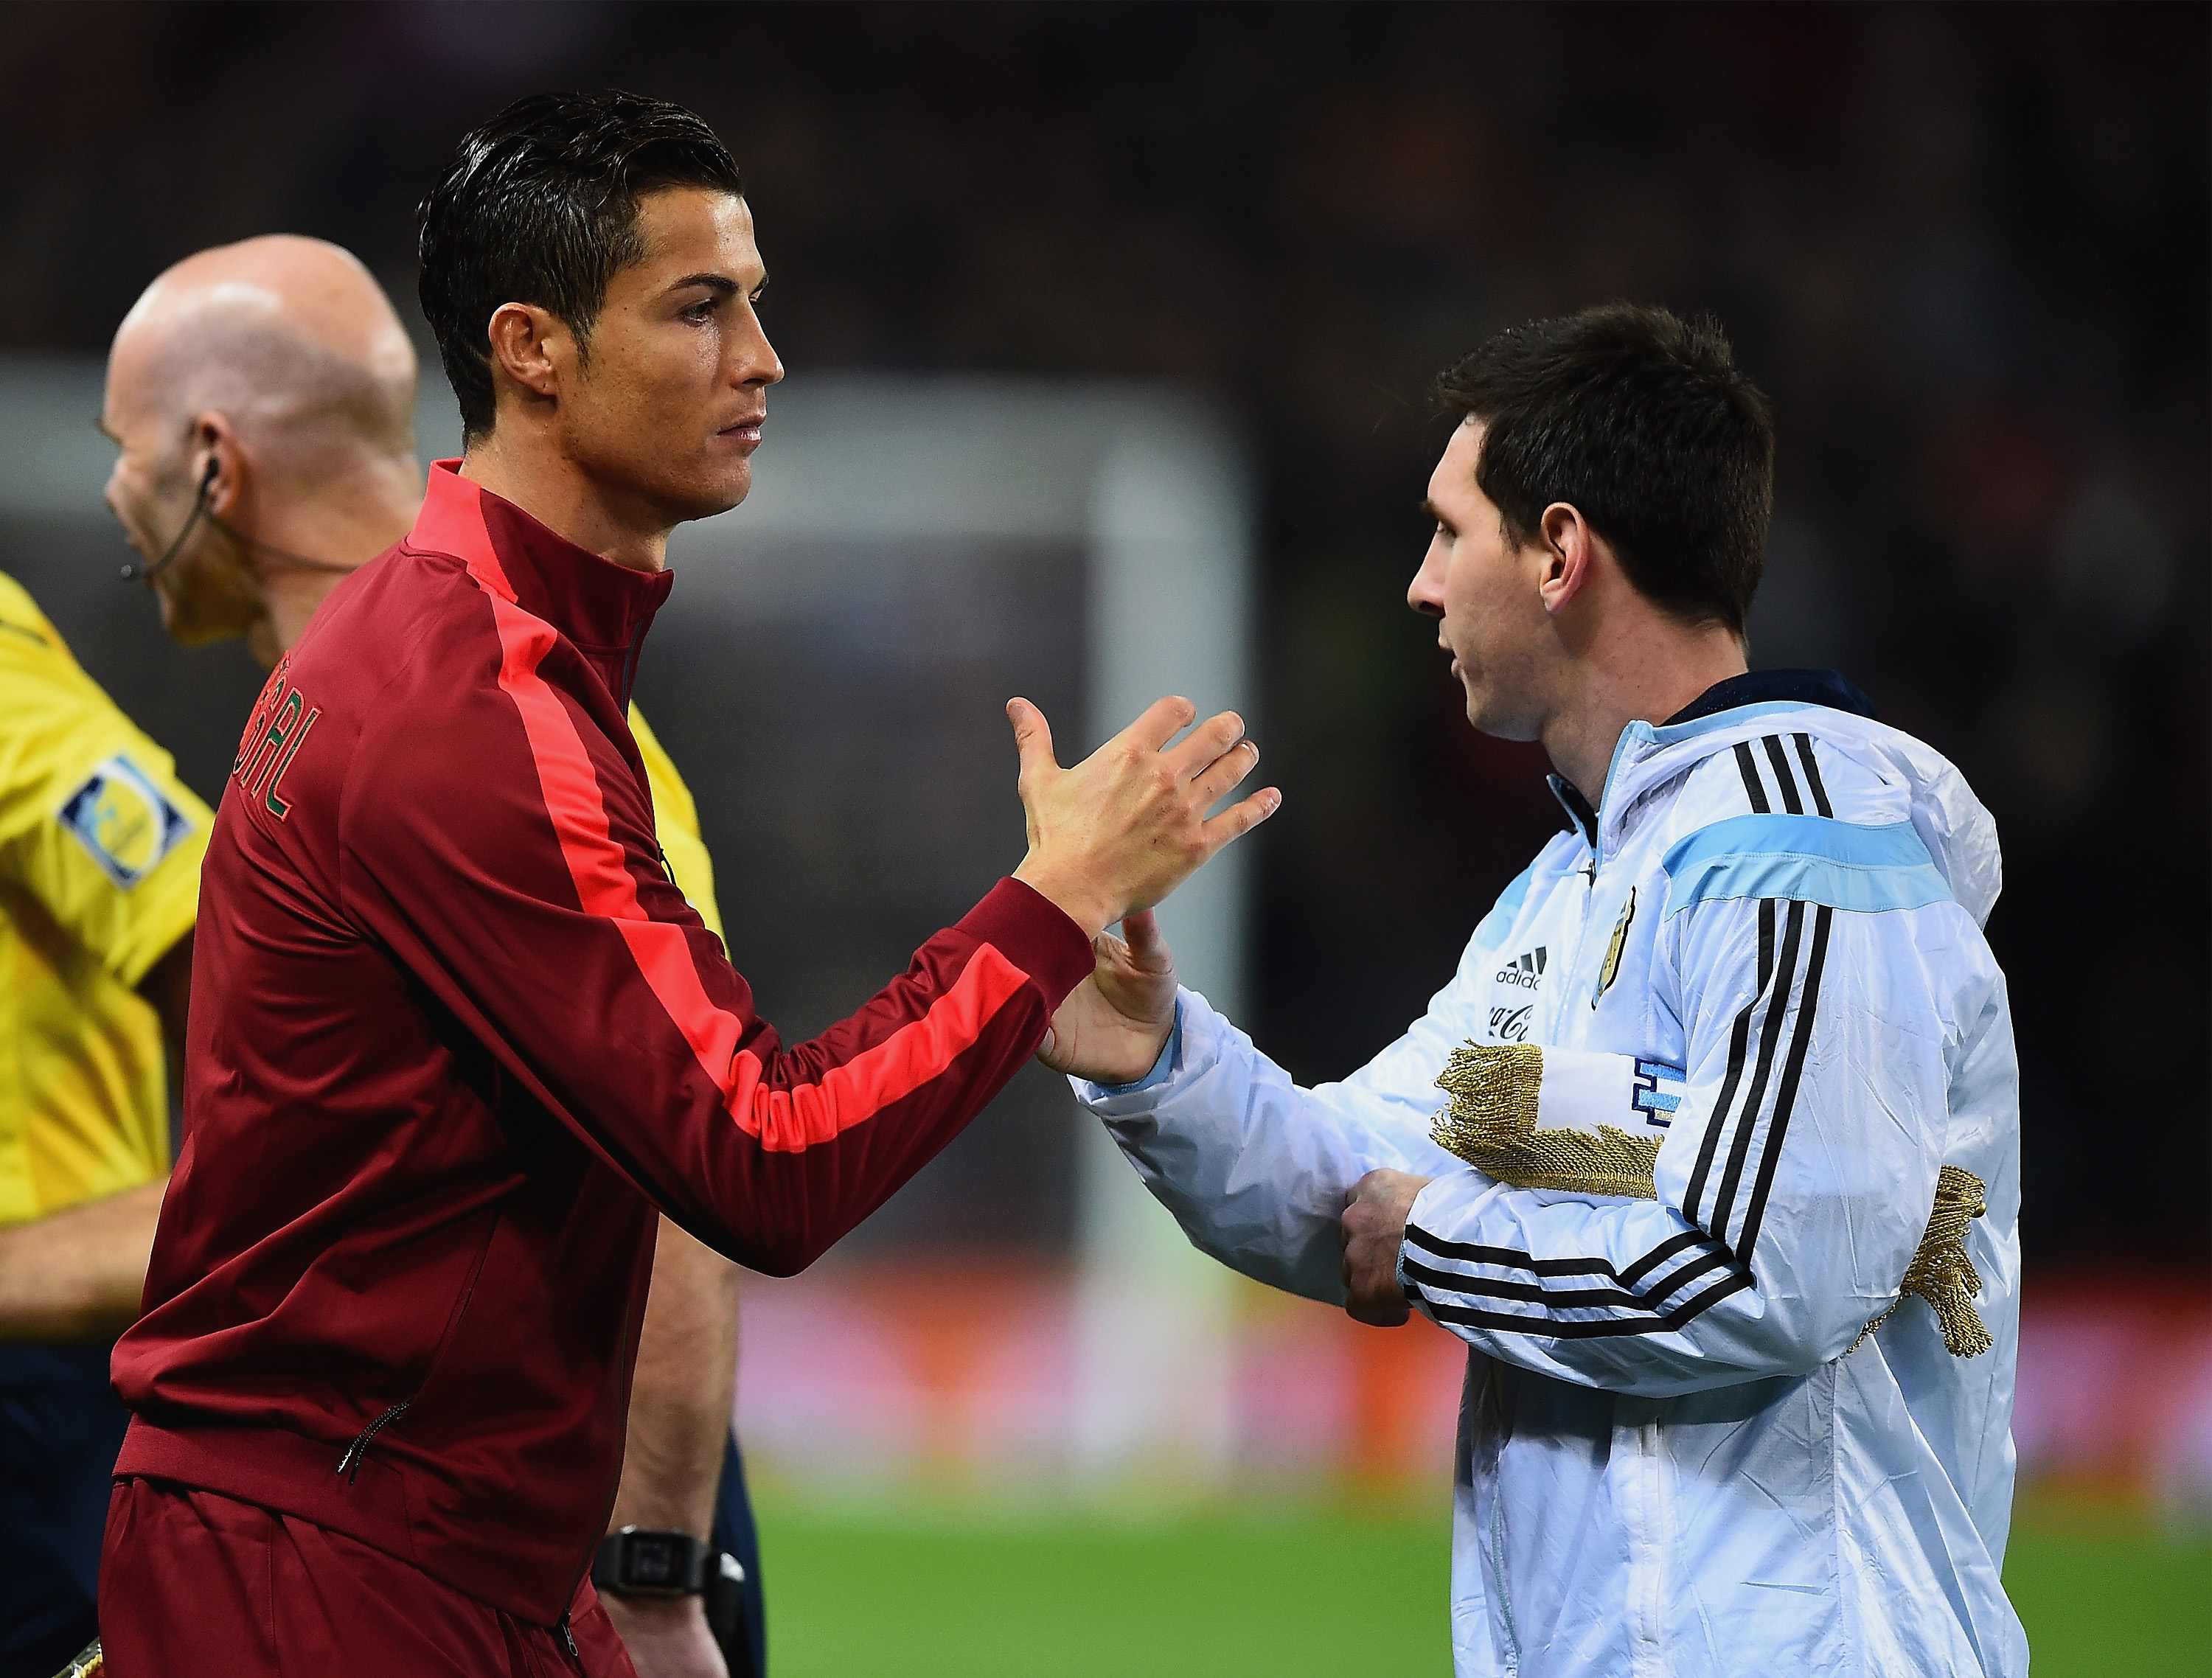 Portugal vs. Argentina: Final score 1-0, youngster Guerreiro snatchs late win